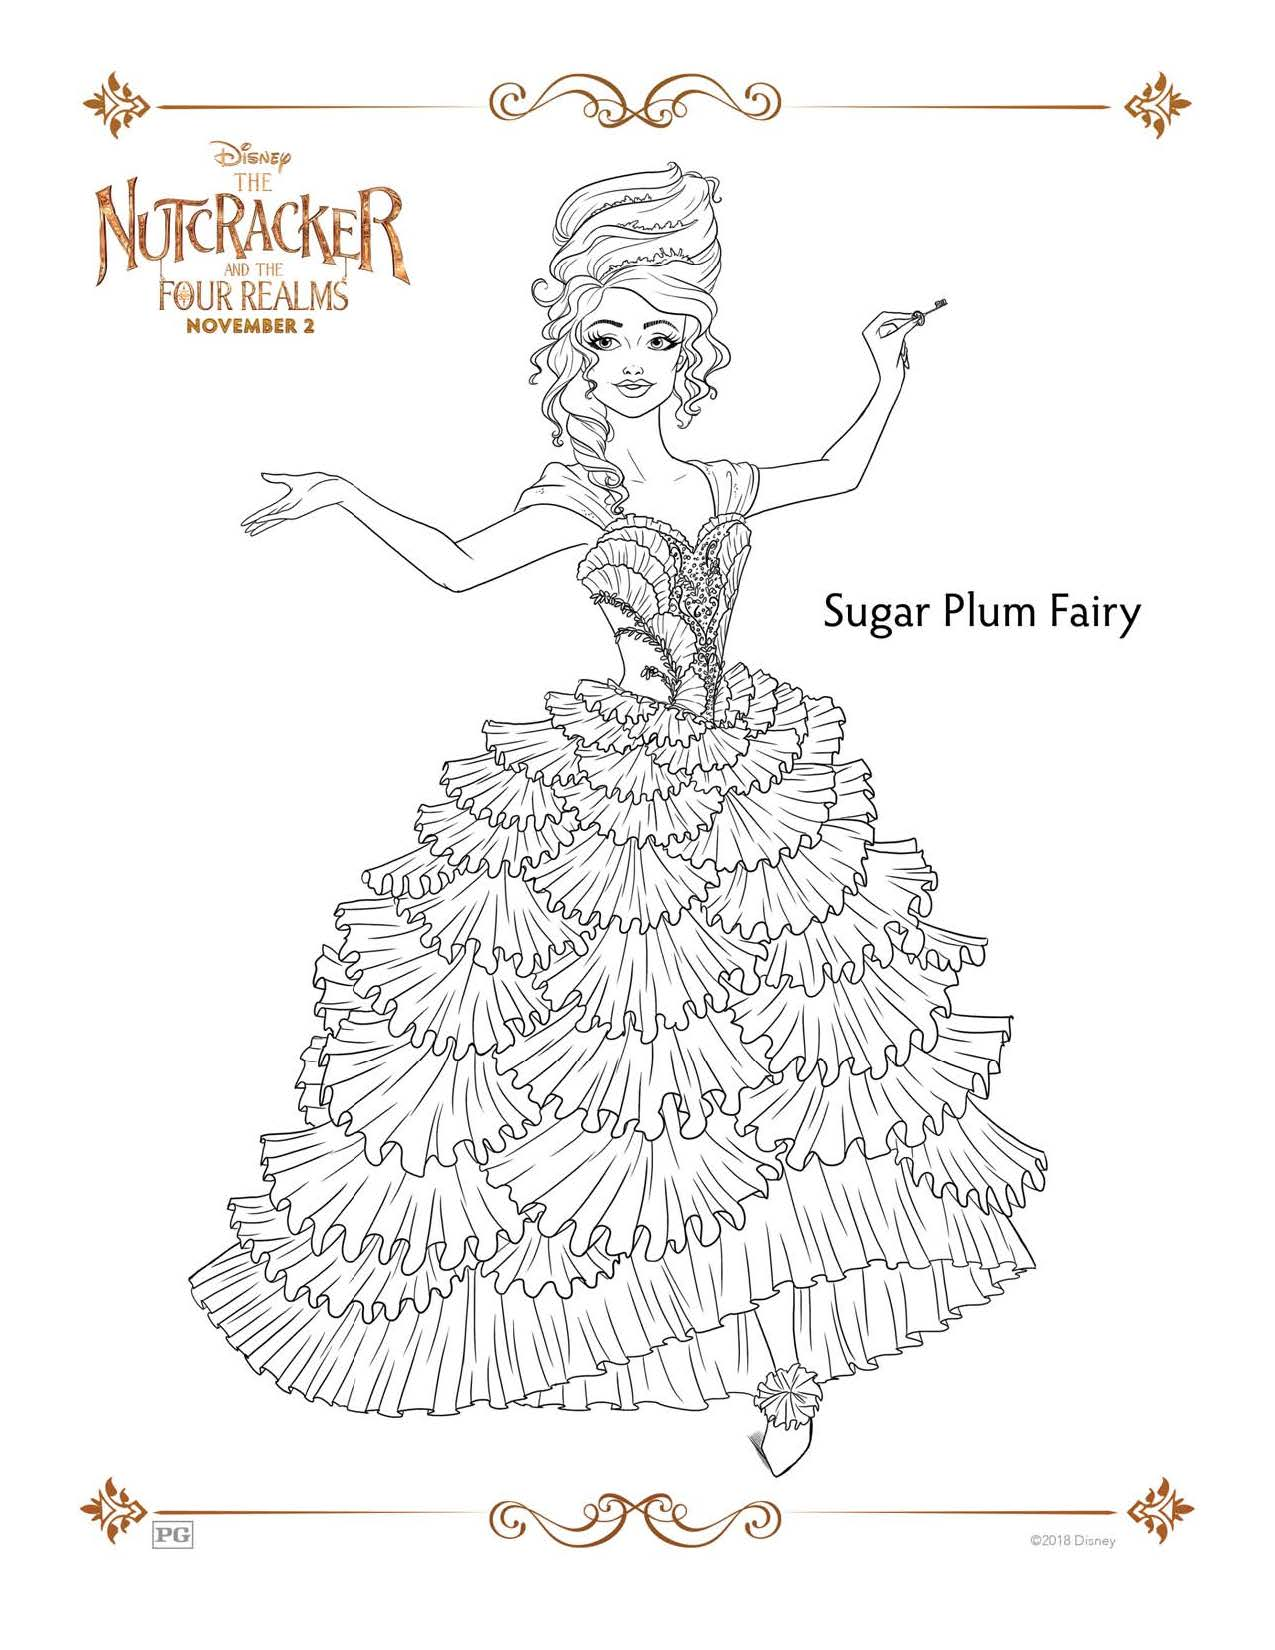 The Nutcracker and the Four Realms Coloring Sheets